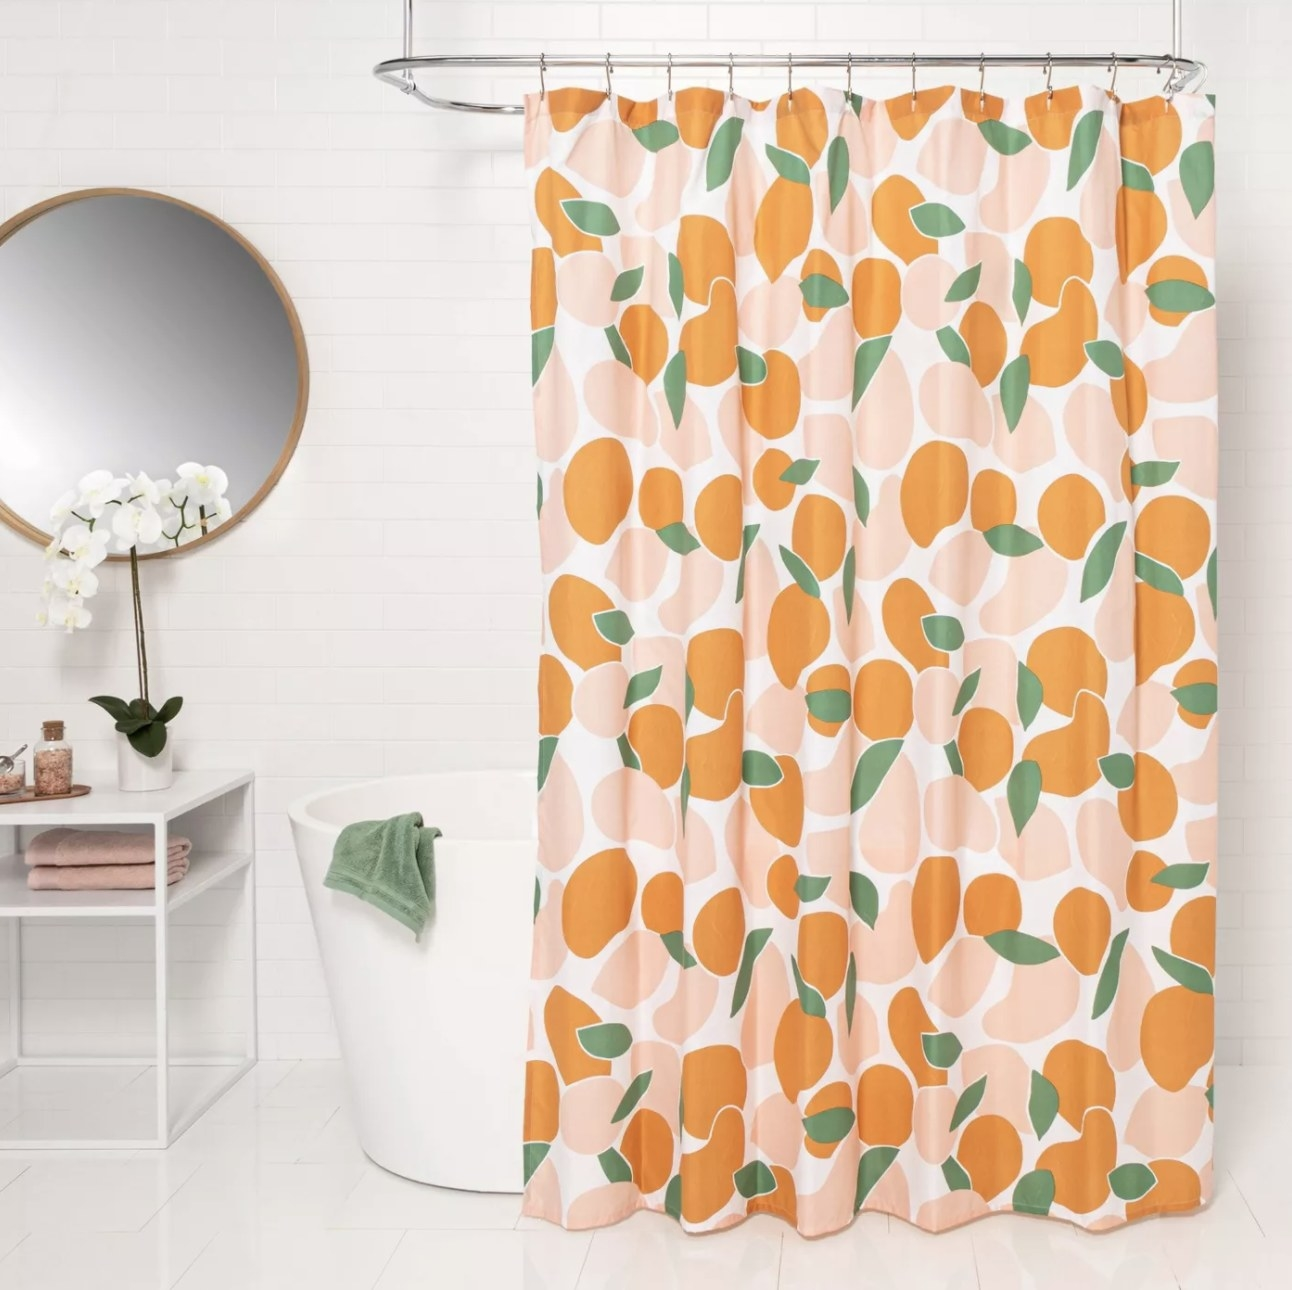 Shower curtain hanging in bathroom